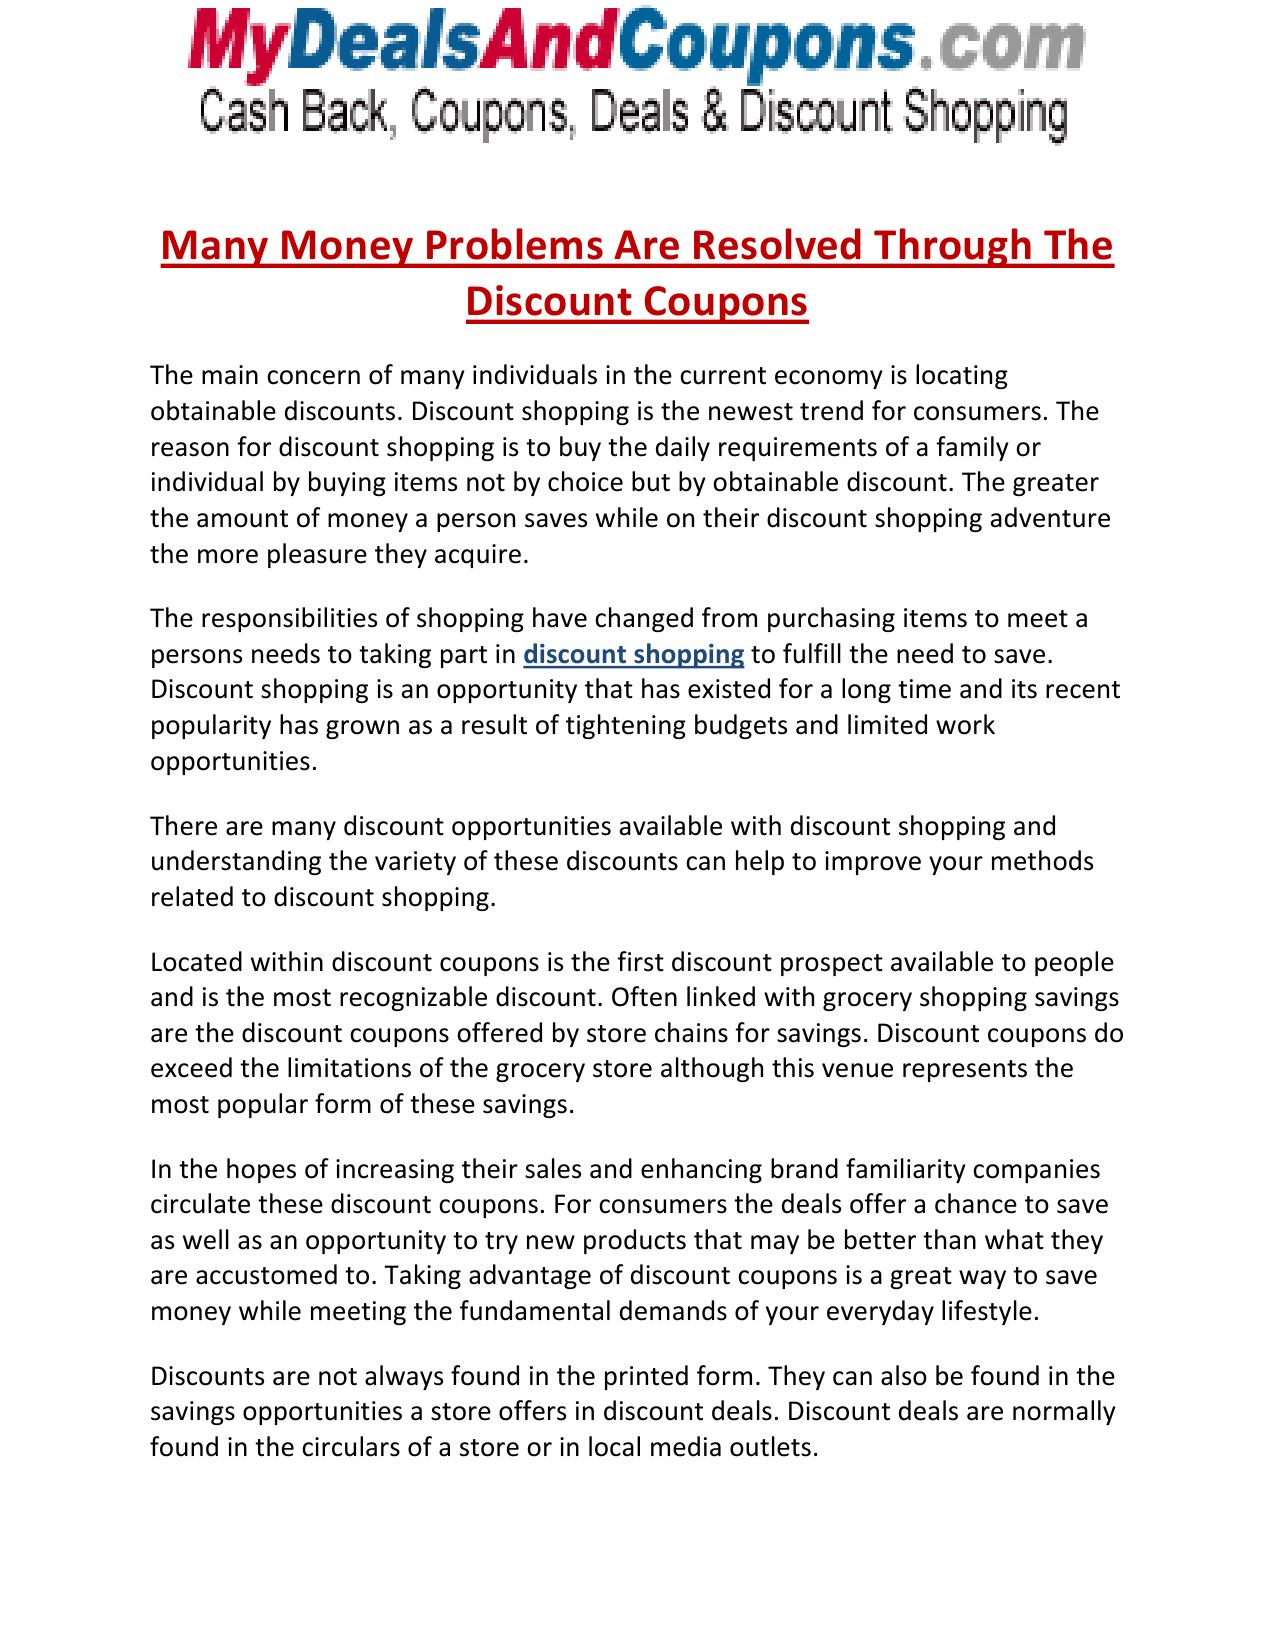 The main problems of the economy and their solutions 36